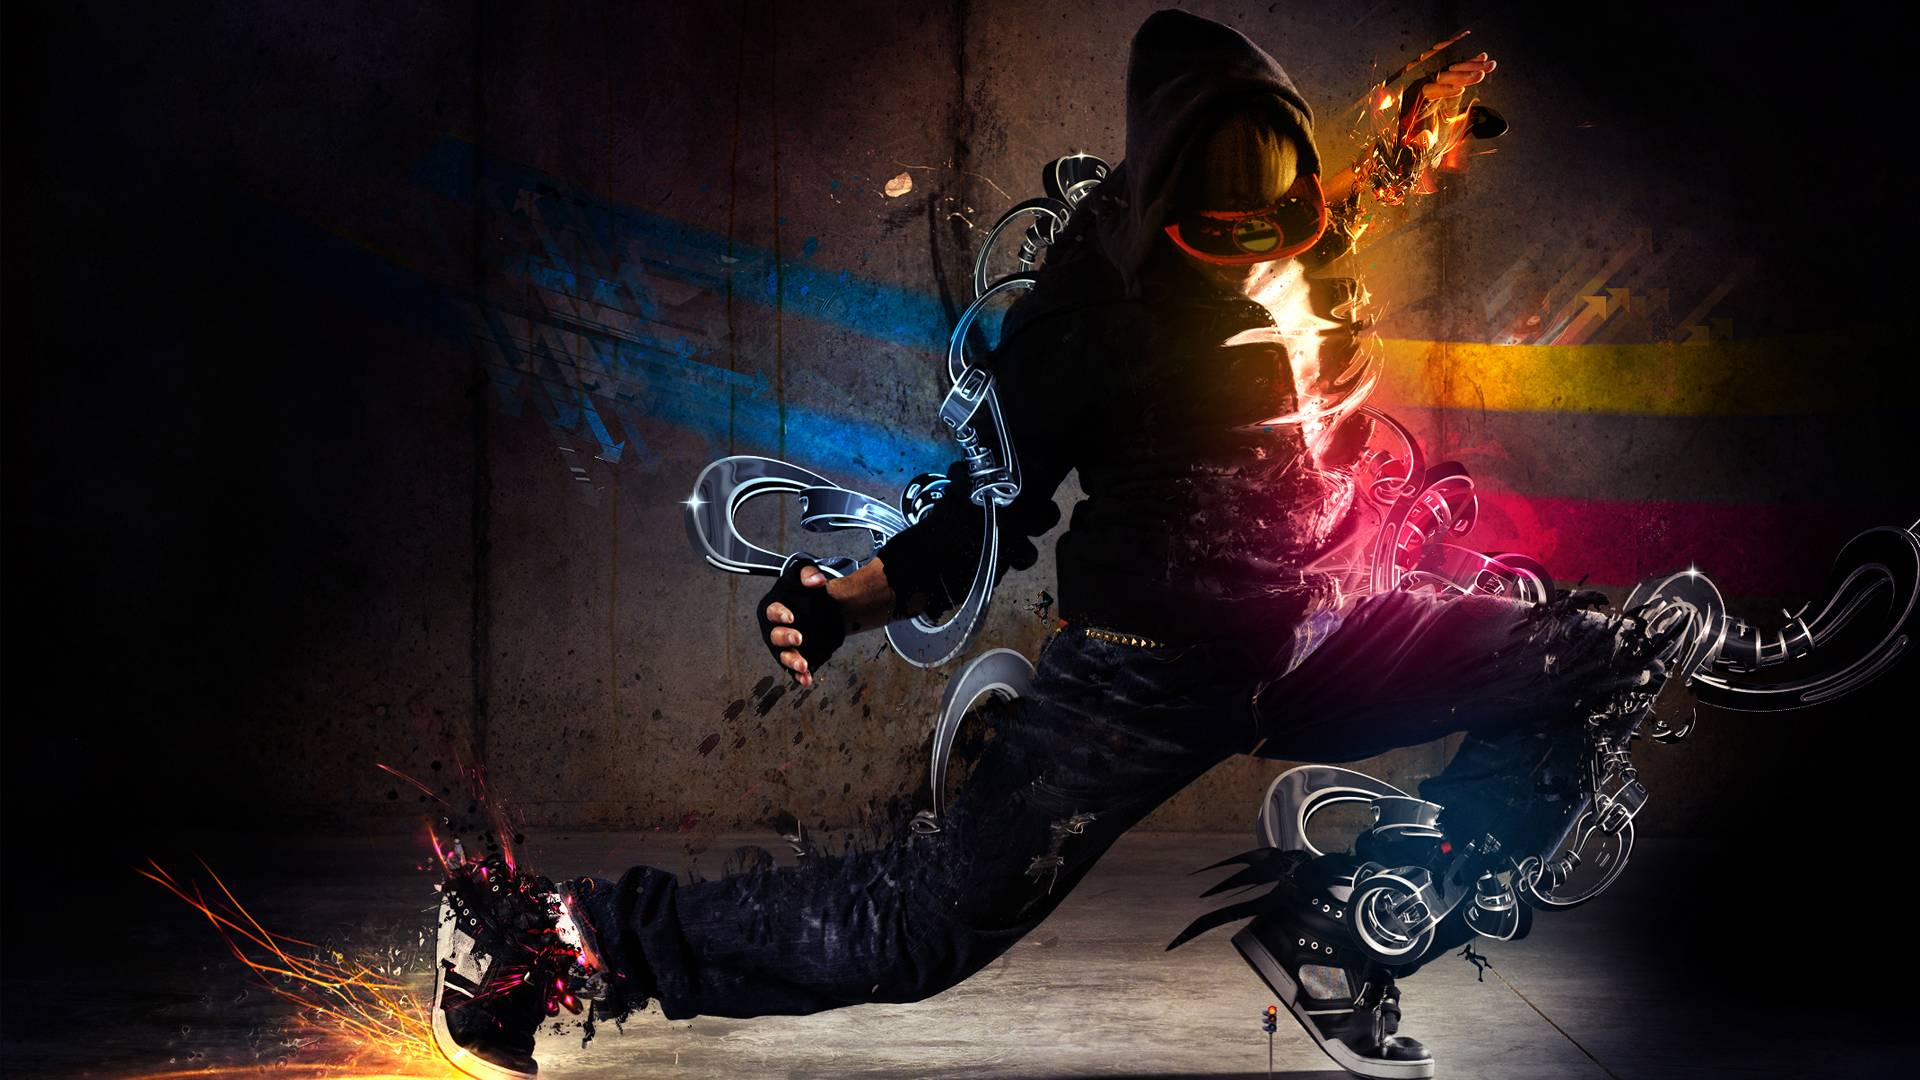 bboy - Samsung Z550 Wallpapers Download Free - Page 1 of 3